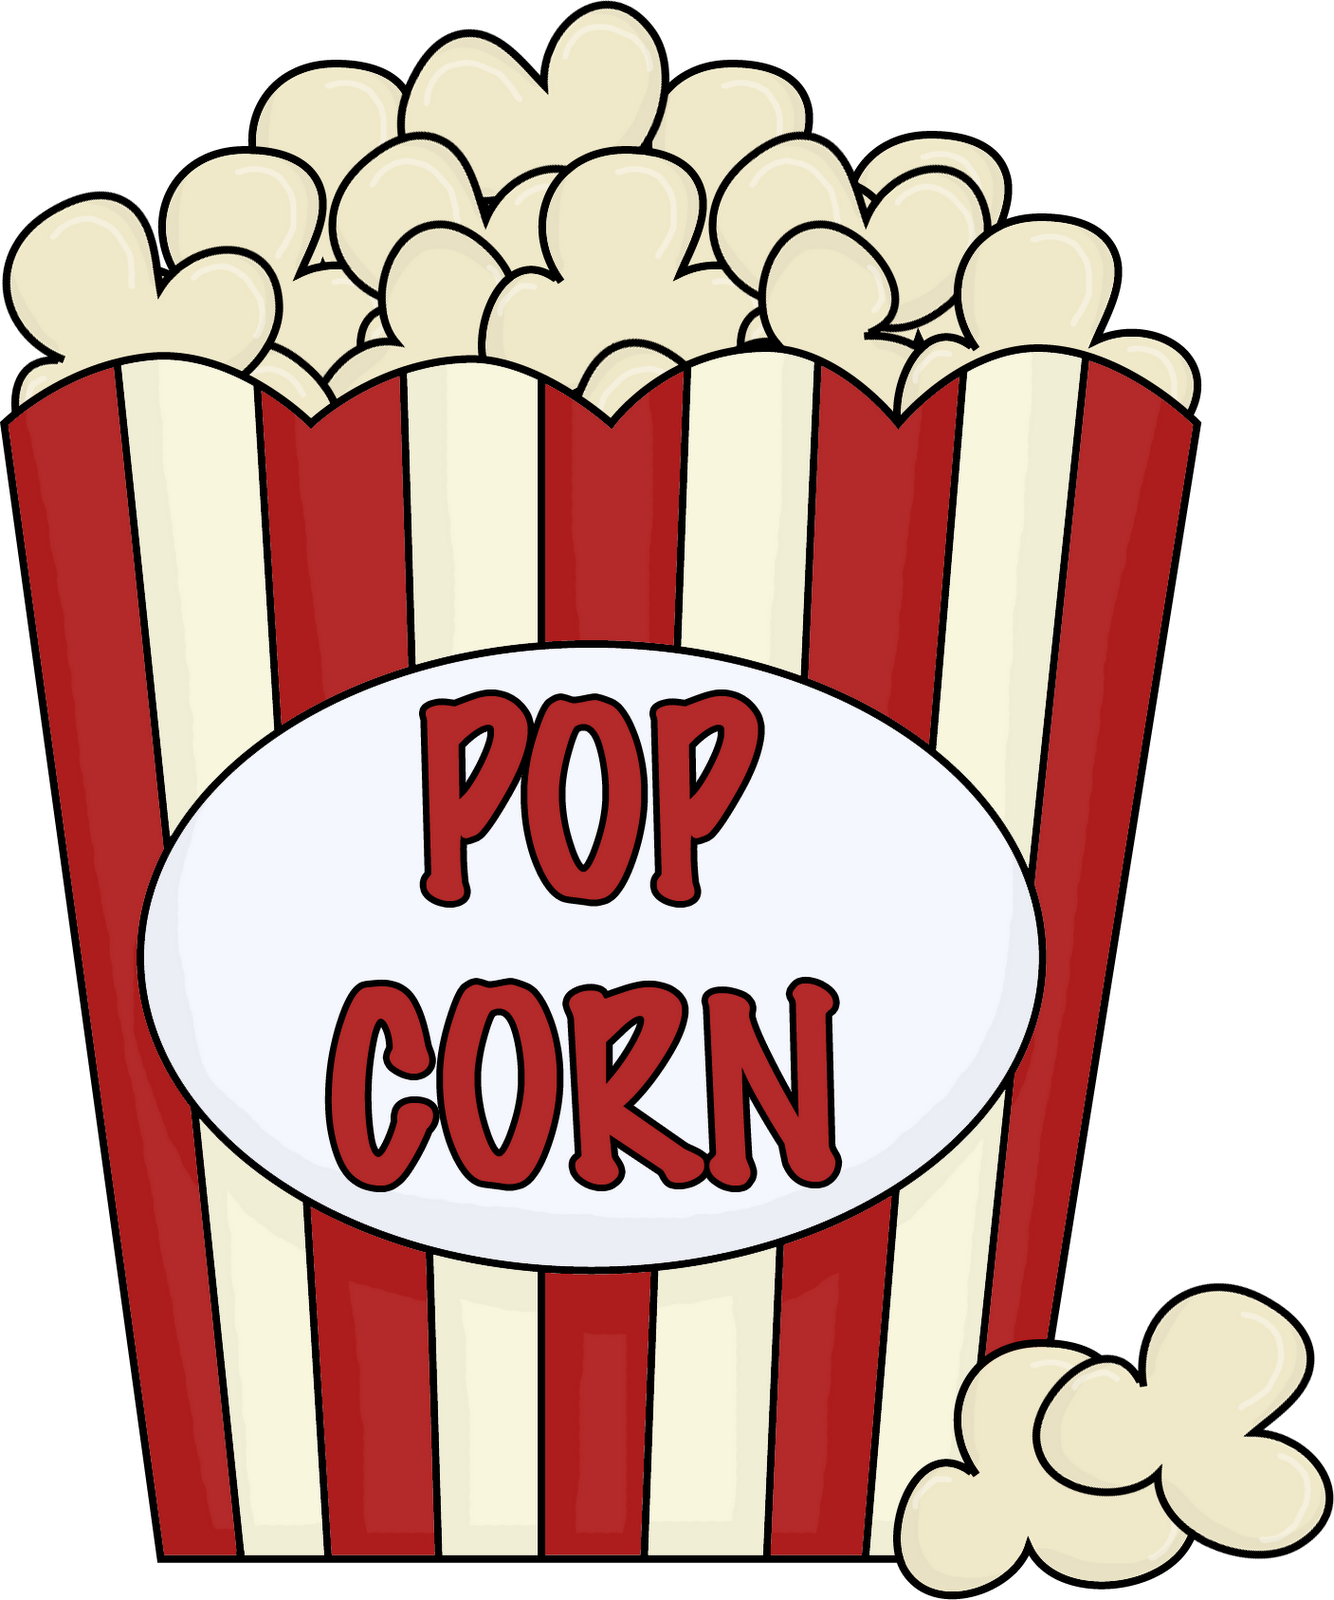 Popcorn clipart border. Hollywood movie